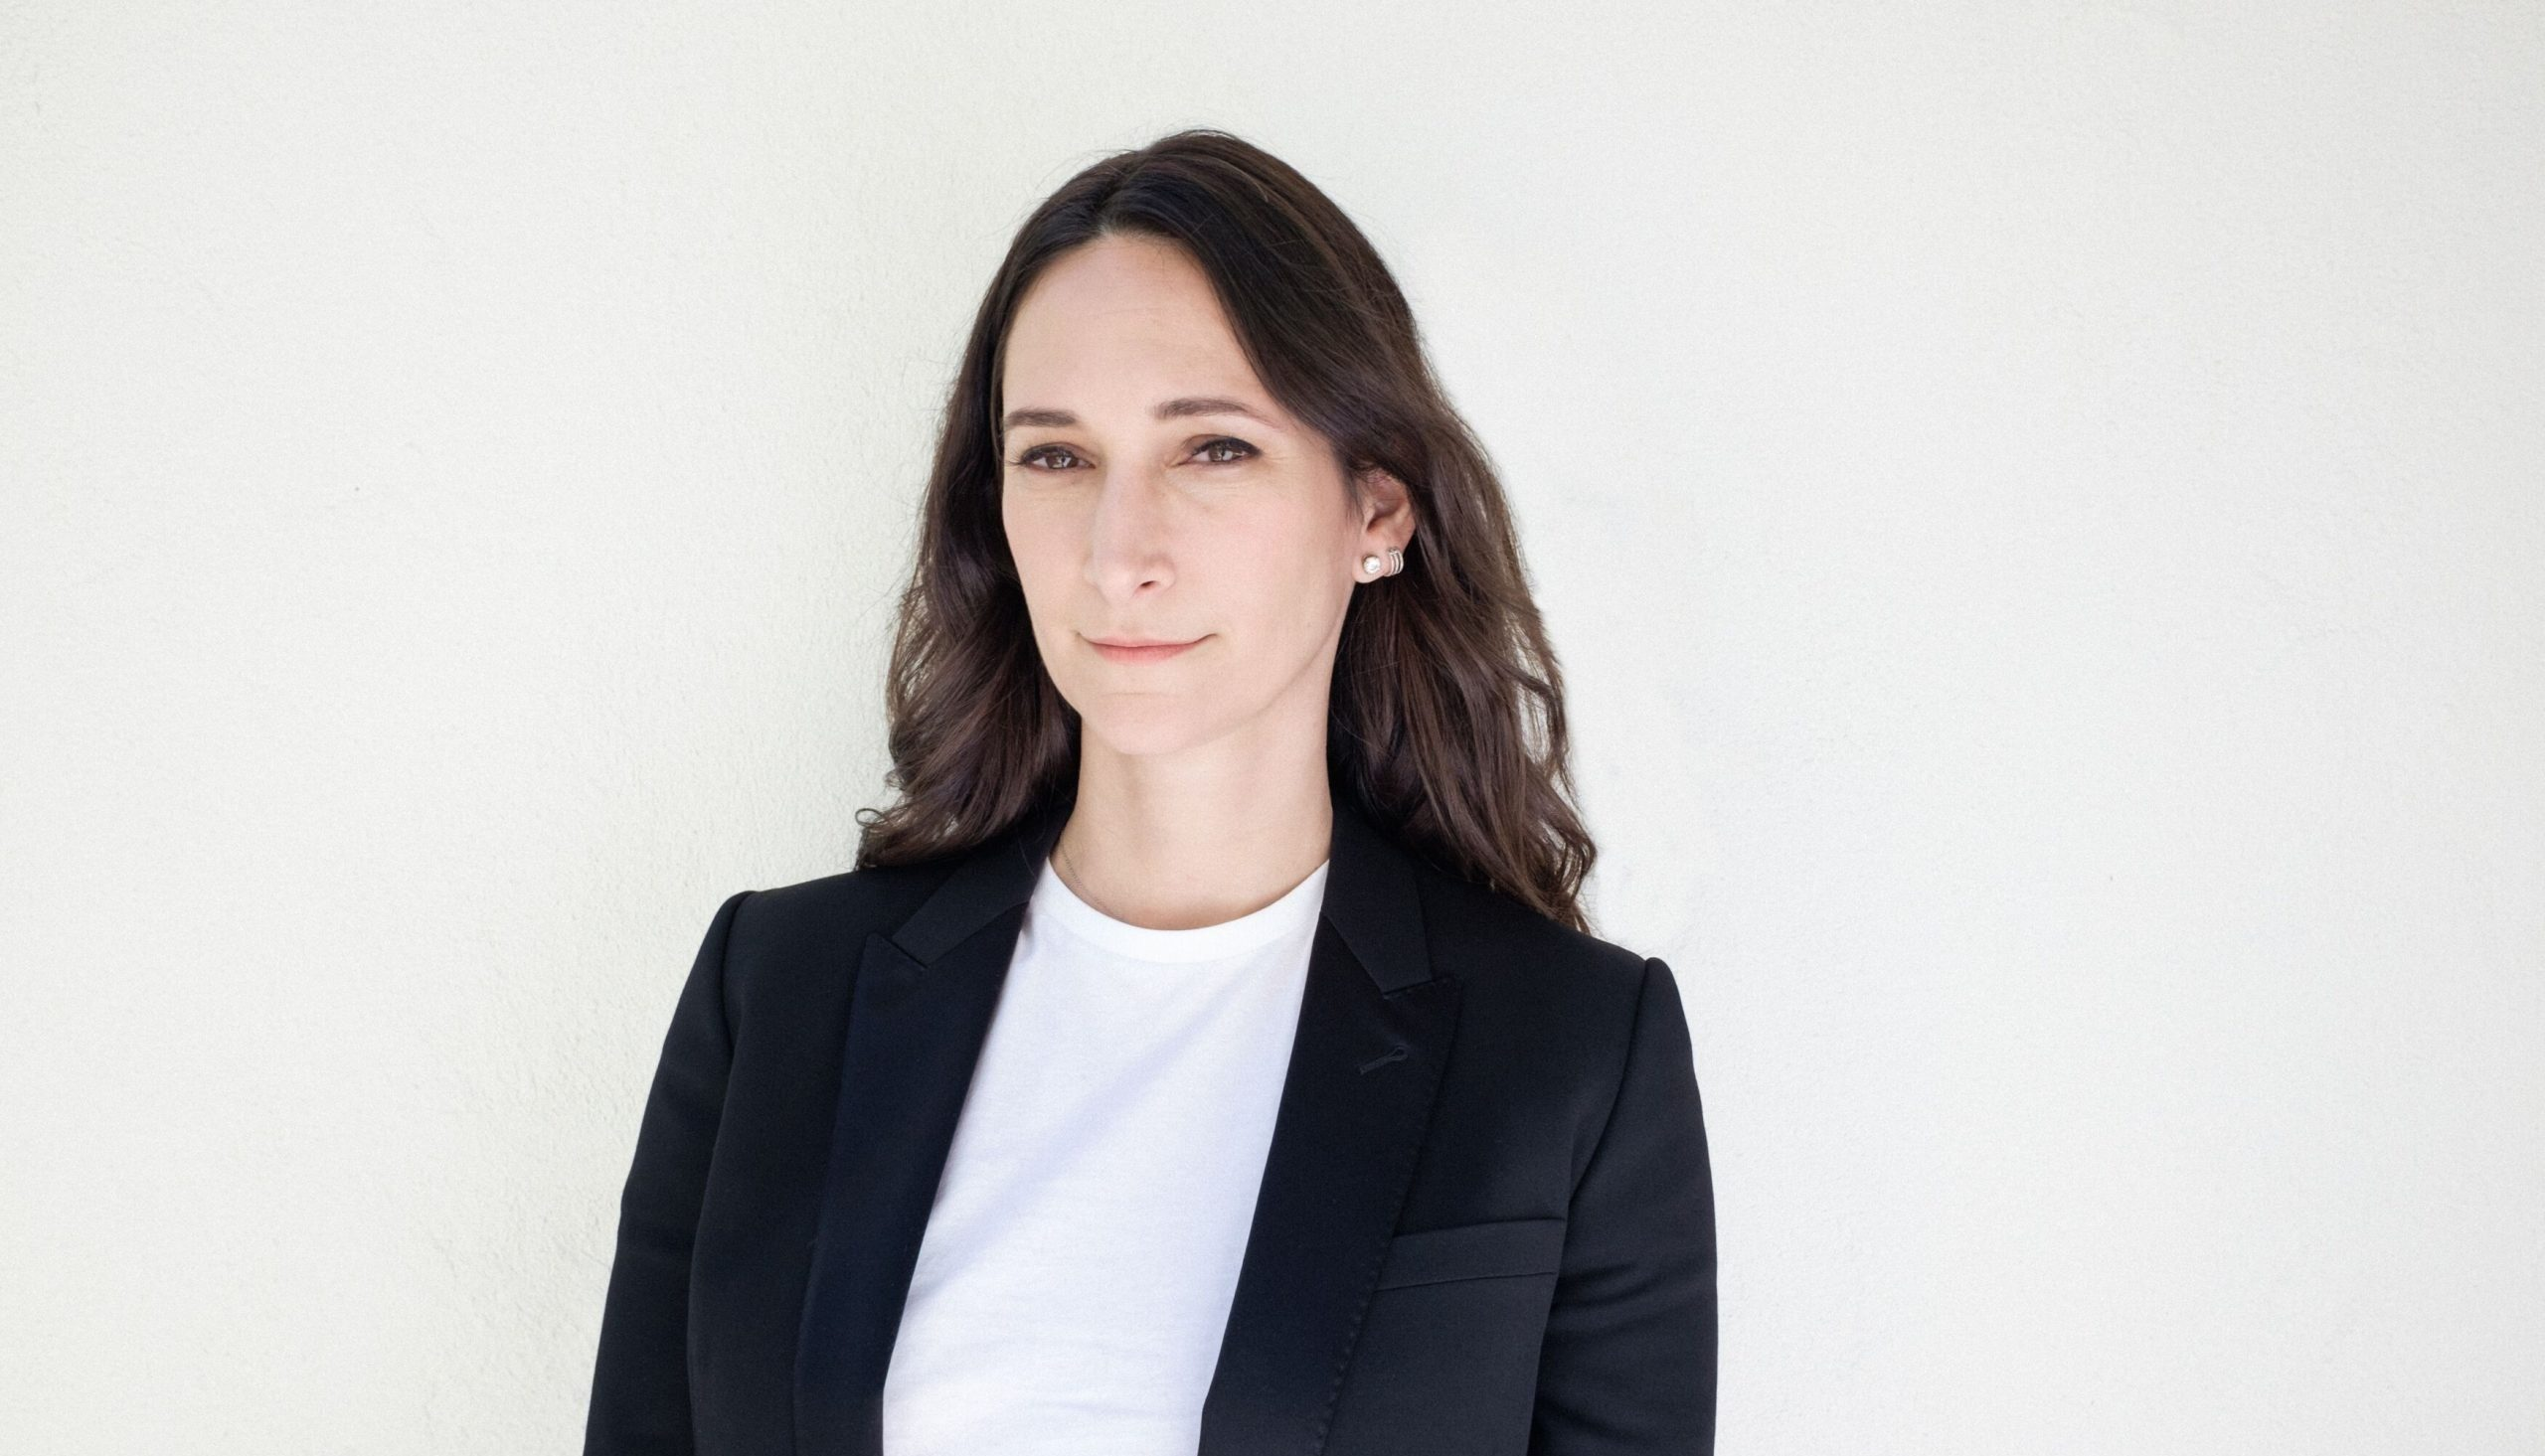 The Serpentine Galleries, London, has appointed Bettina Korek as its CEO